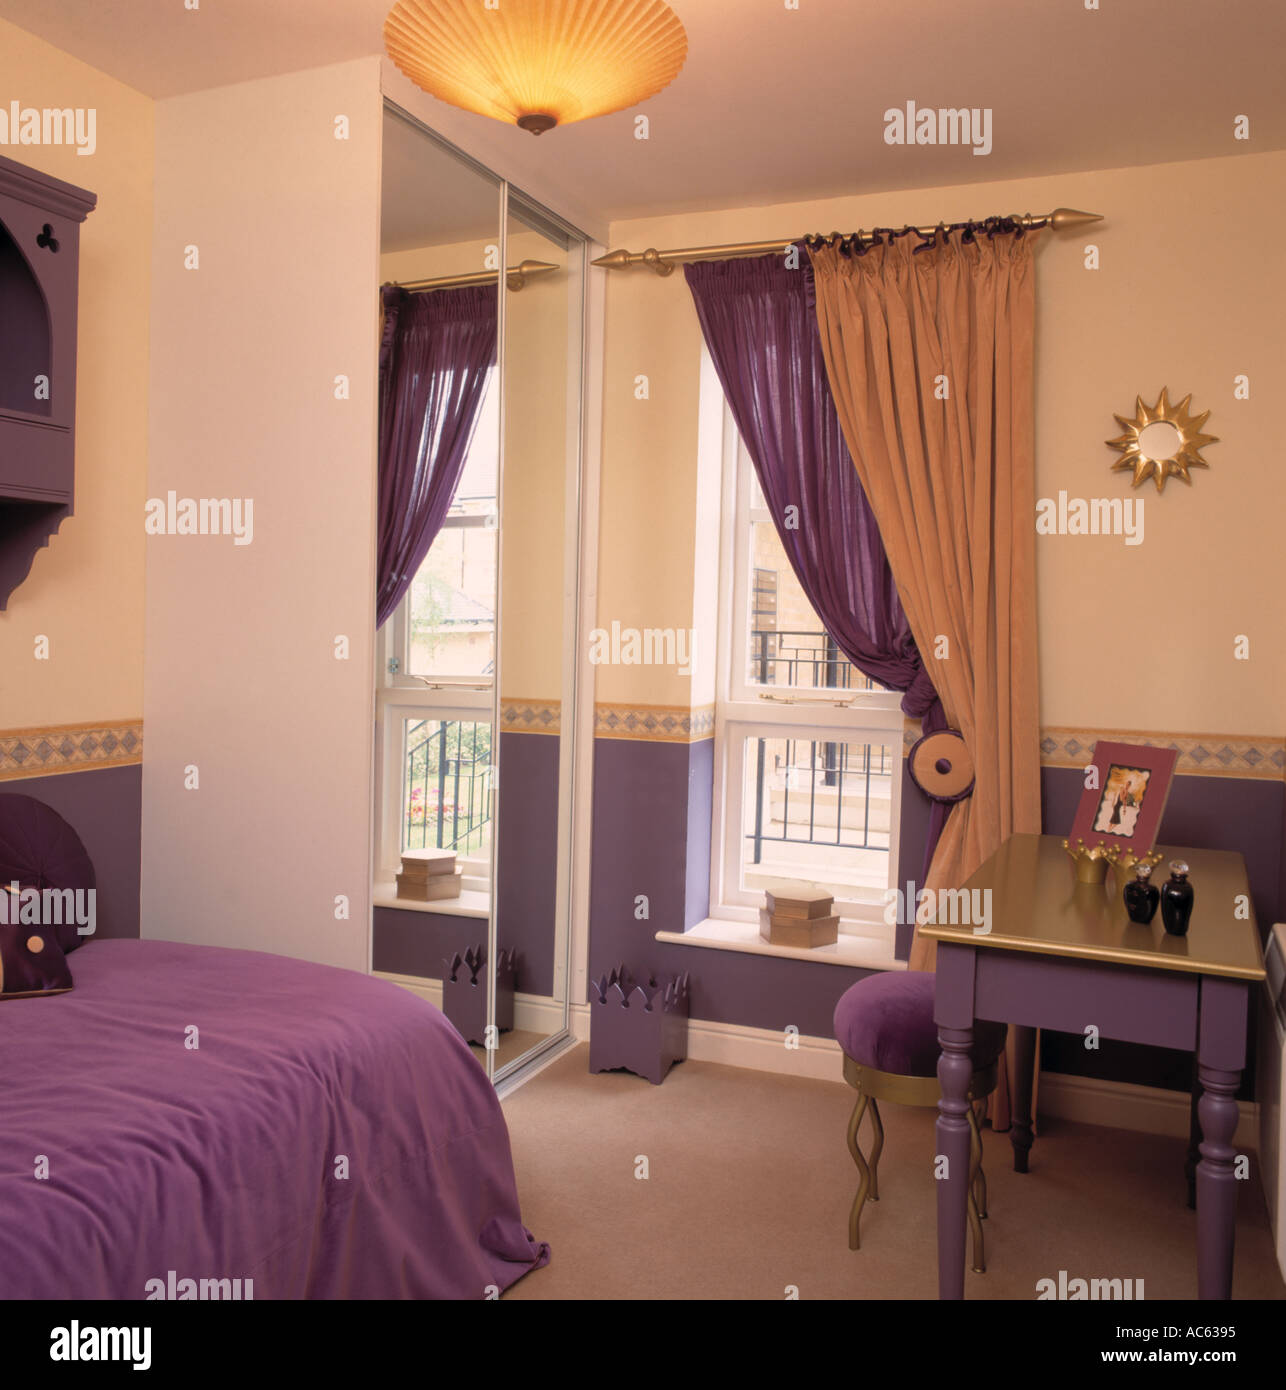 Purple And Gold Curtains At Window Beside Fitted Wardrobe With Mirrored Door In Apartment Bedroom Bedcover